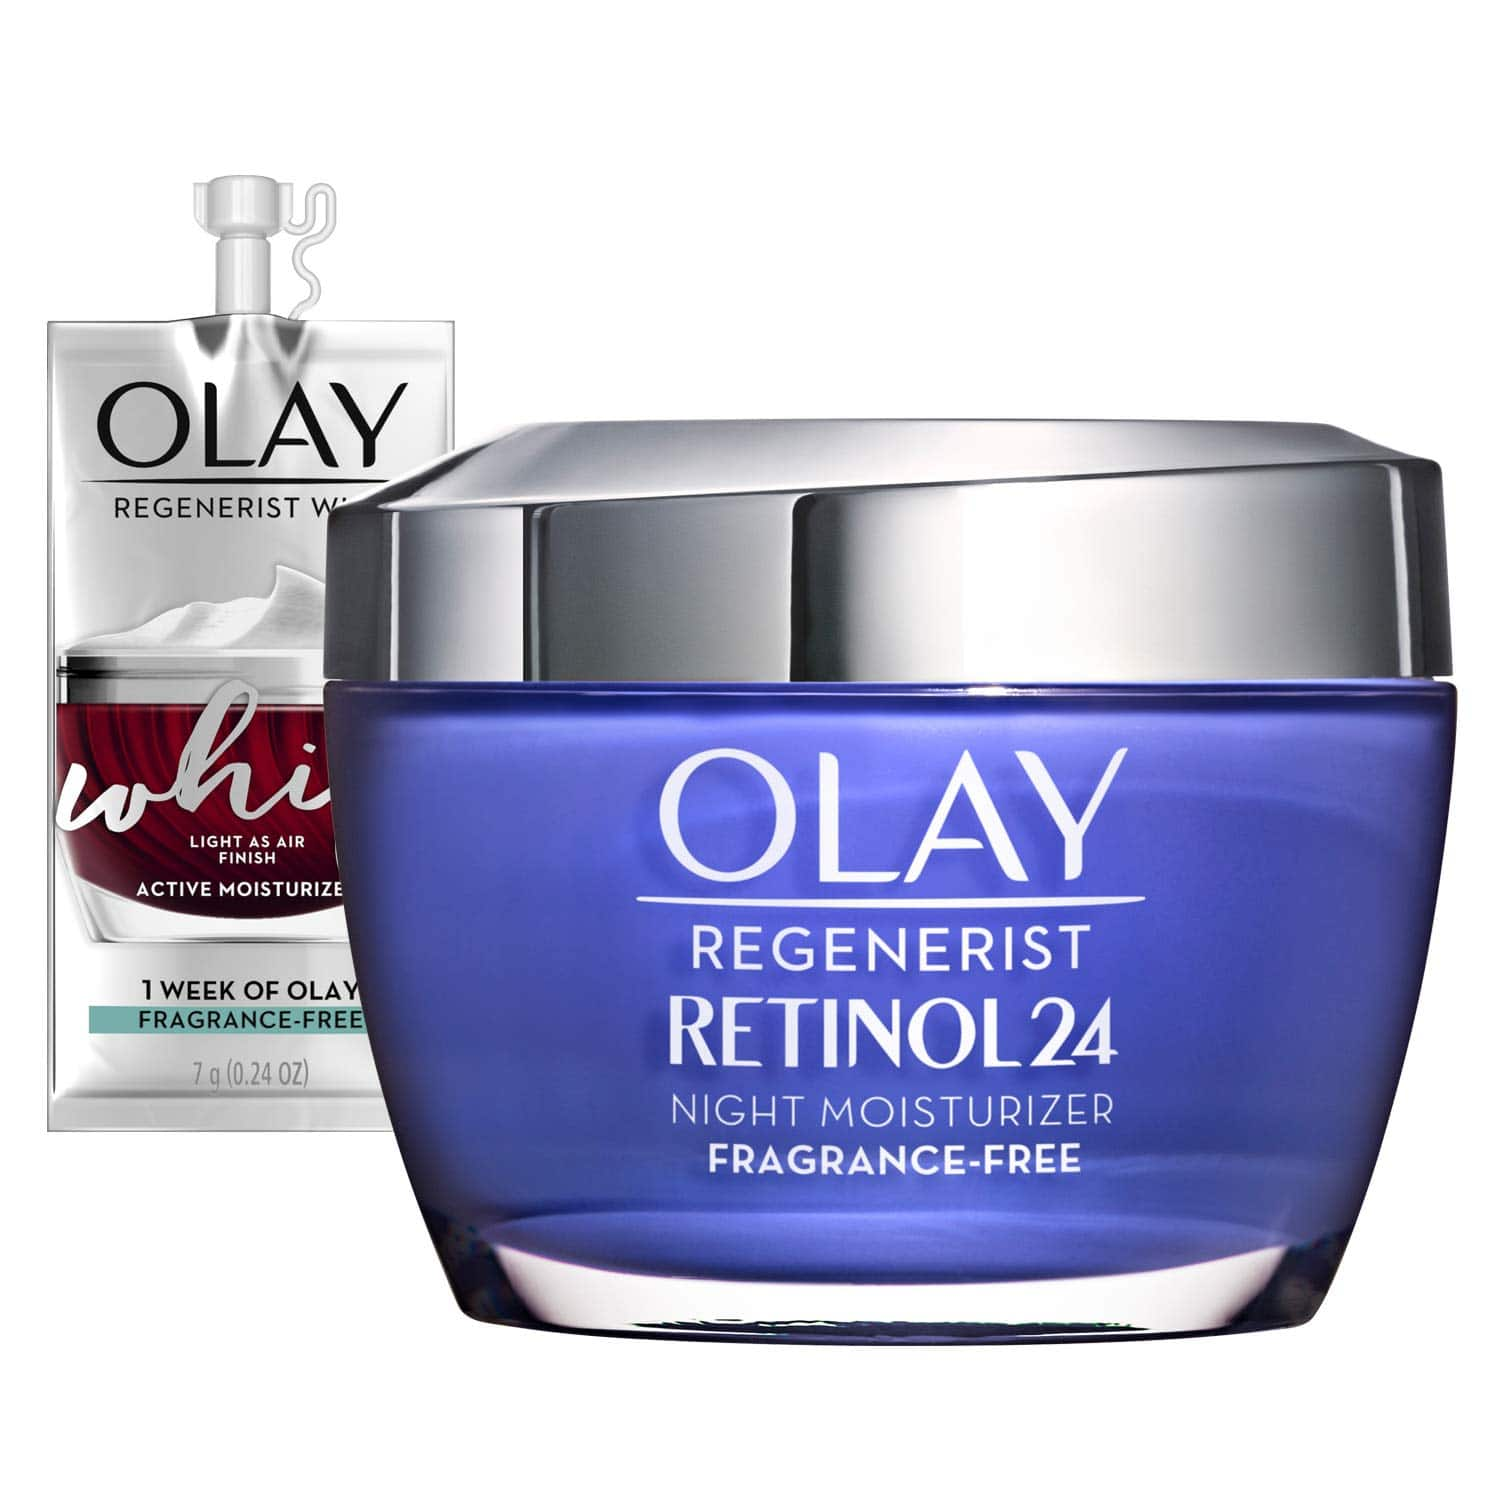 Amazon has Olay Regenerist Retinol 24 Night Moisturizer for $12 if you clip coupon and use S&S